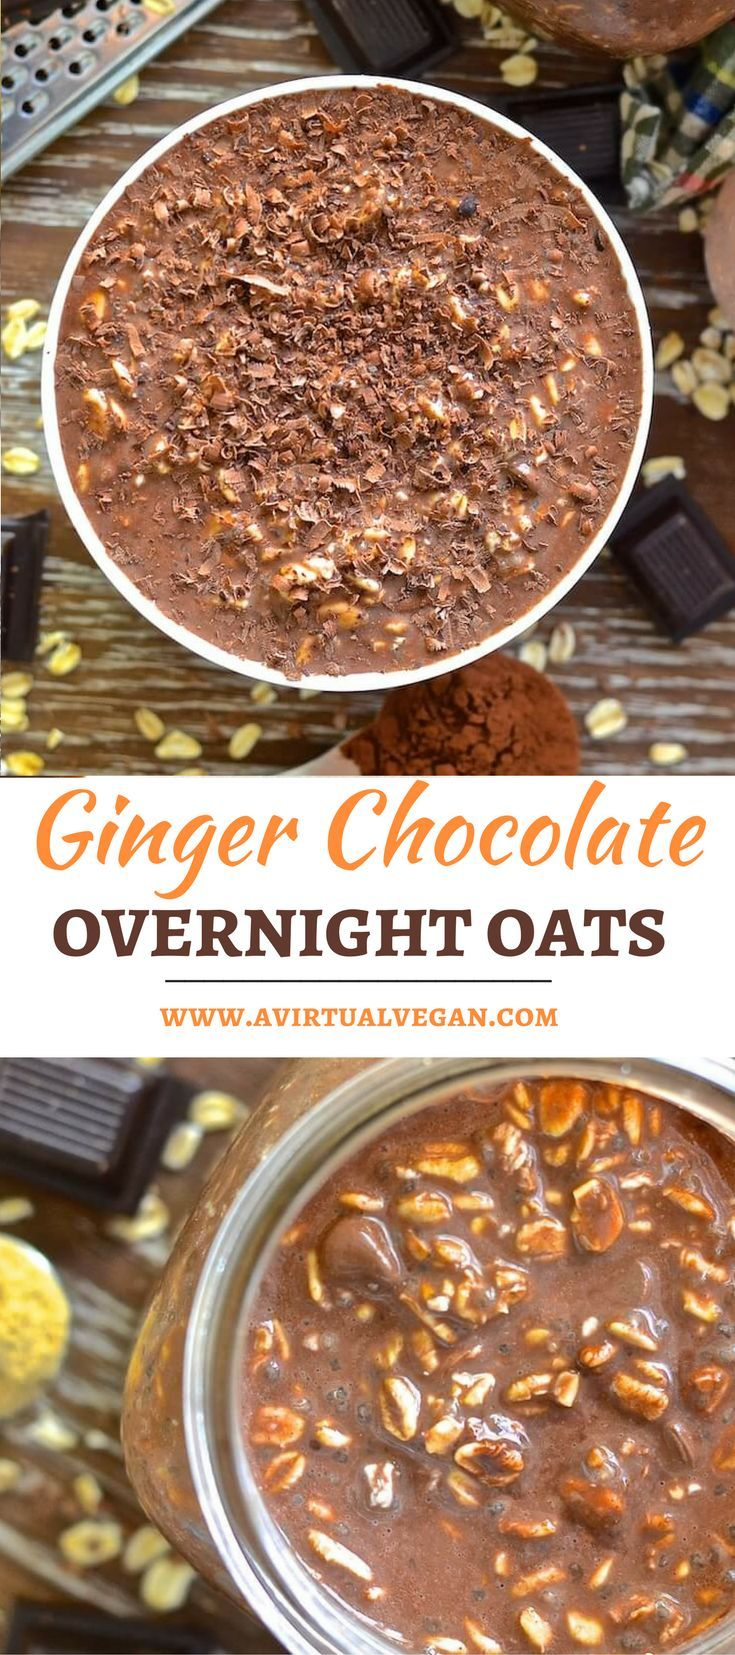 Ginger Chocolate Overnight Oats - Wake up to a jar of chocolatey, oaty goodness with a touch of aromatic ginger warmth. No cooking involved via @avirtualvegan